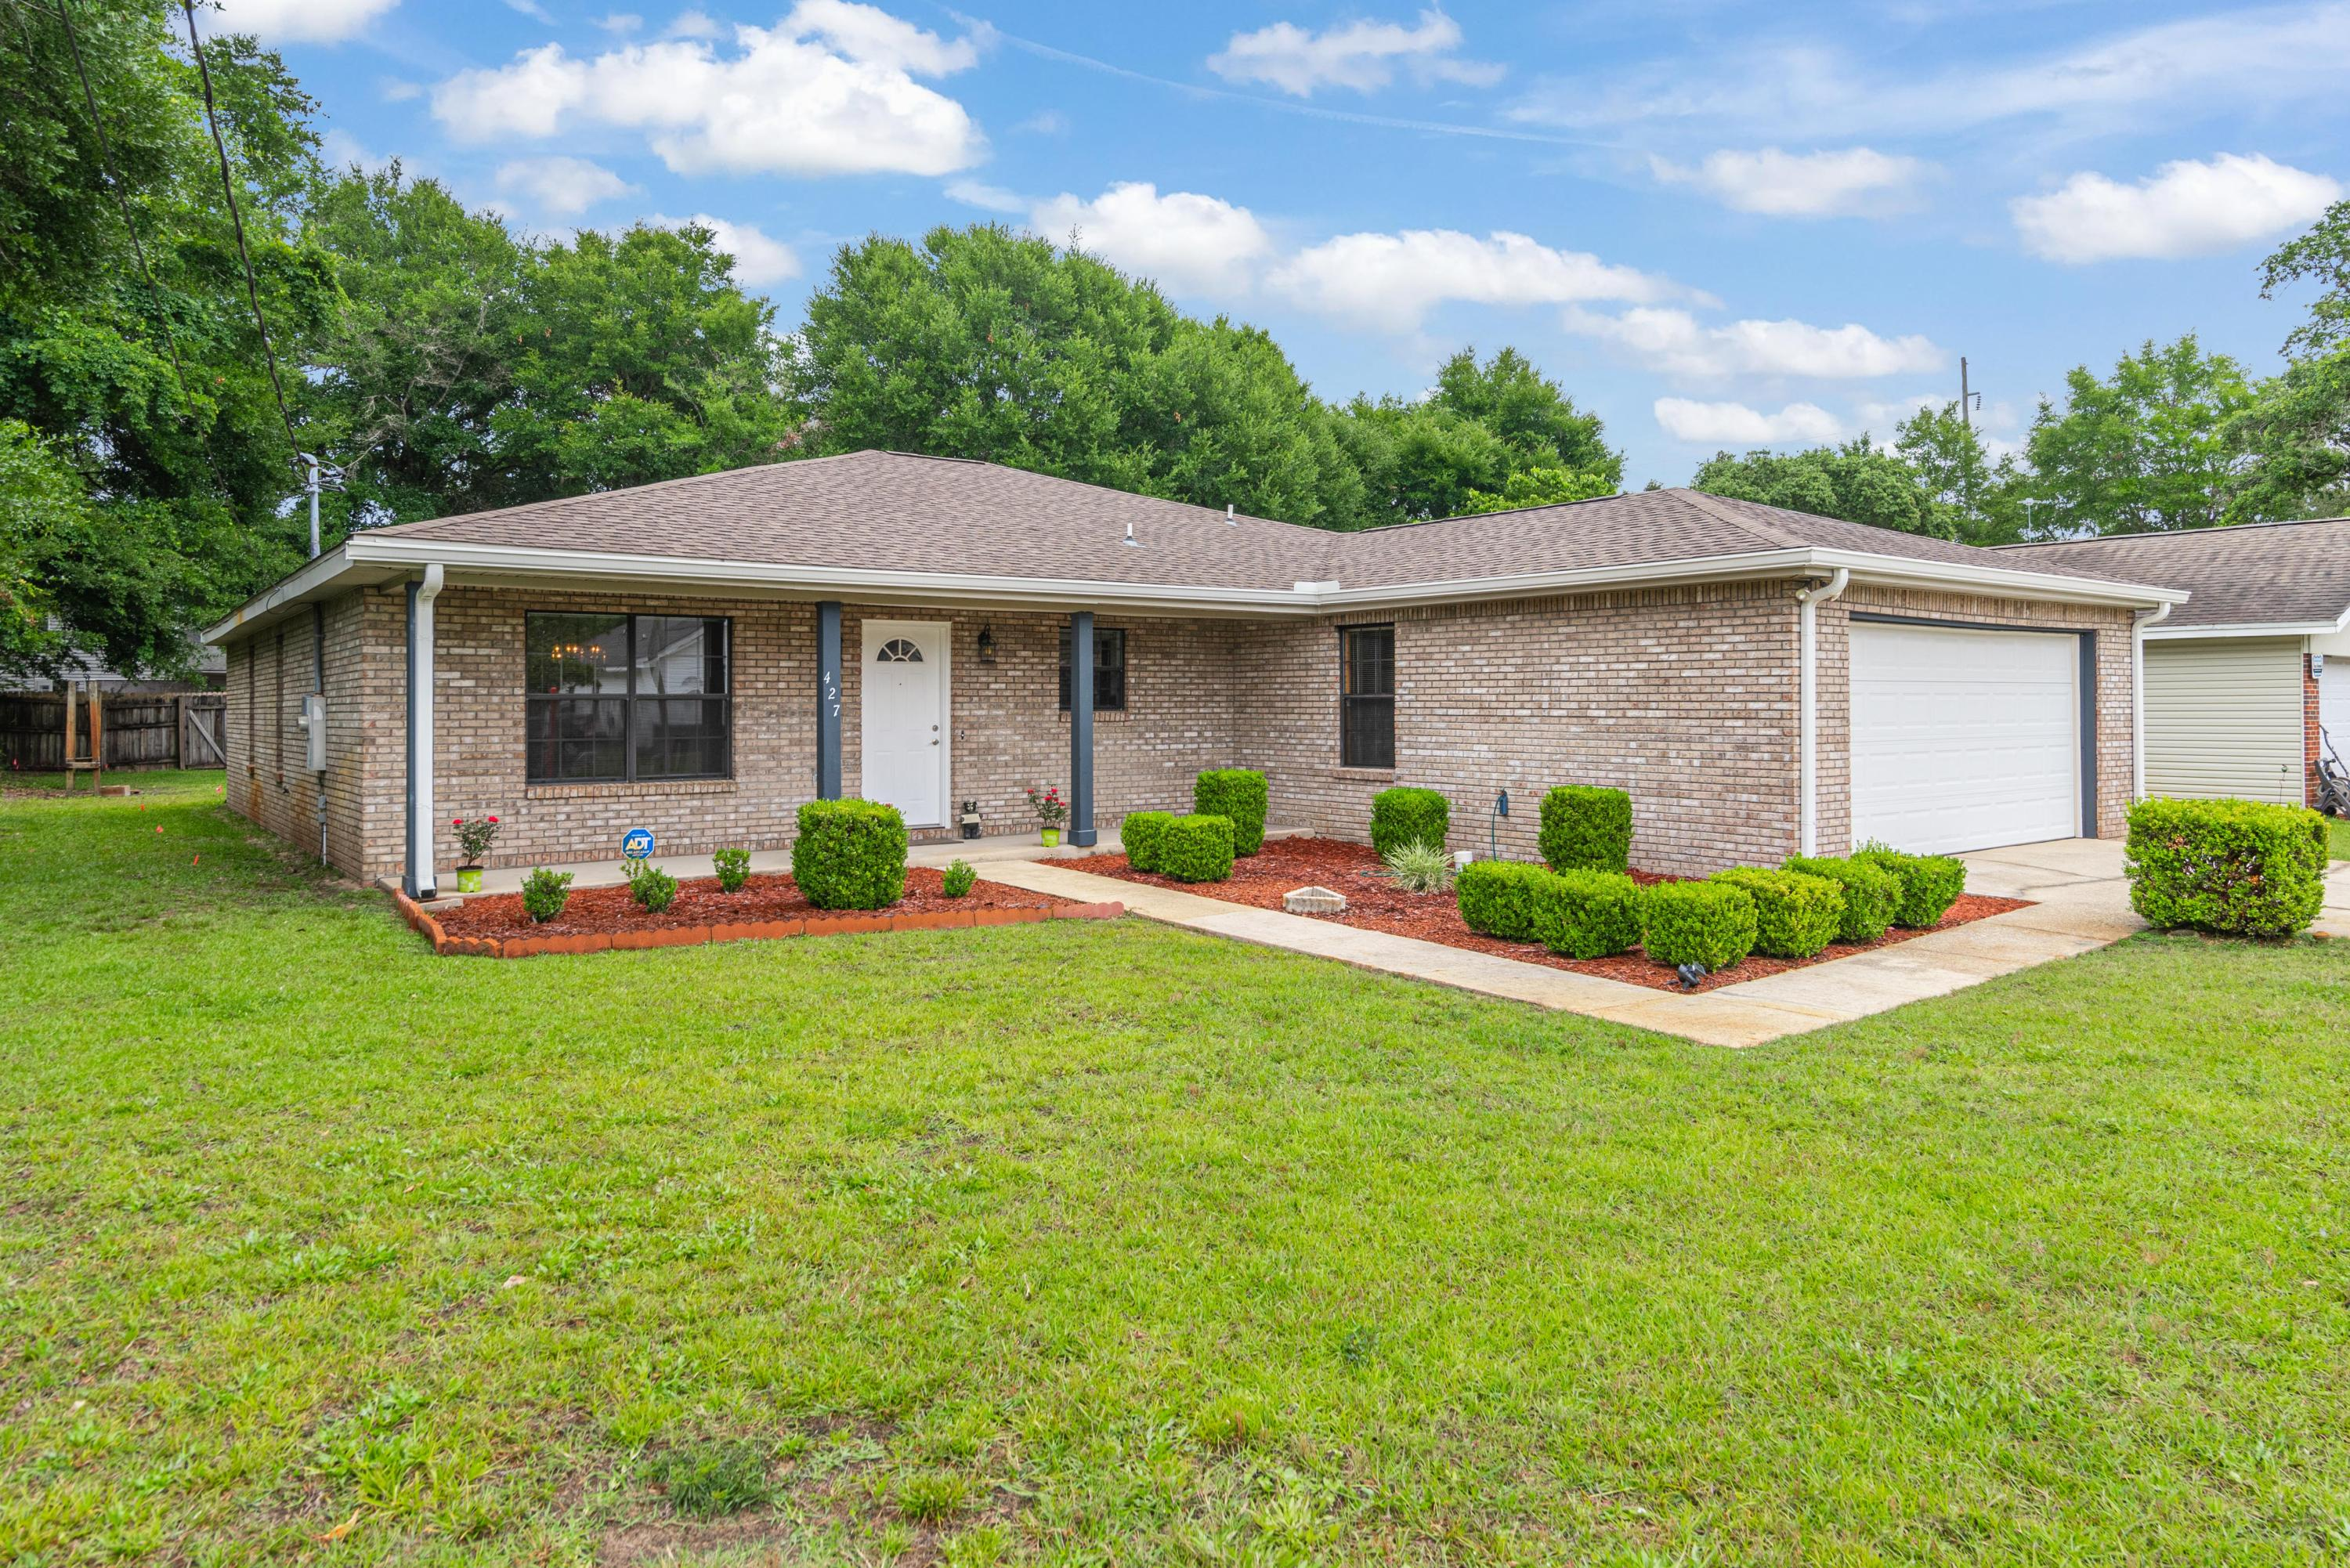 Better than new! This home has been meticulously taken care of and renovated with attention to every